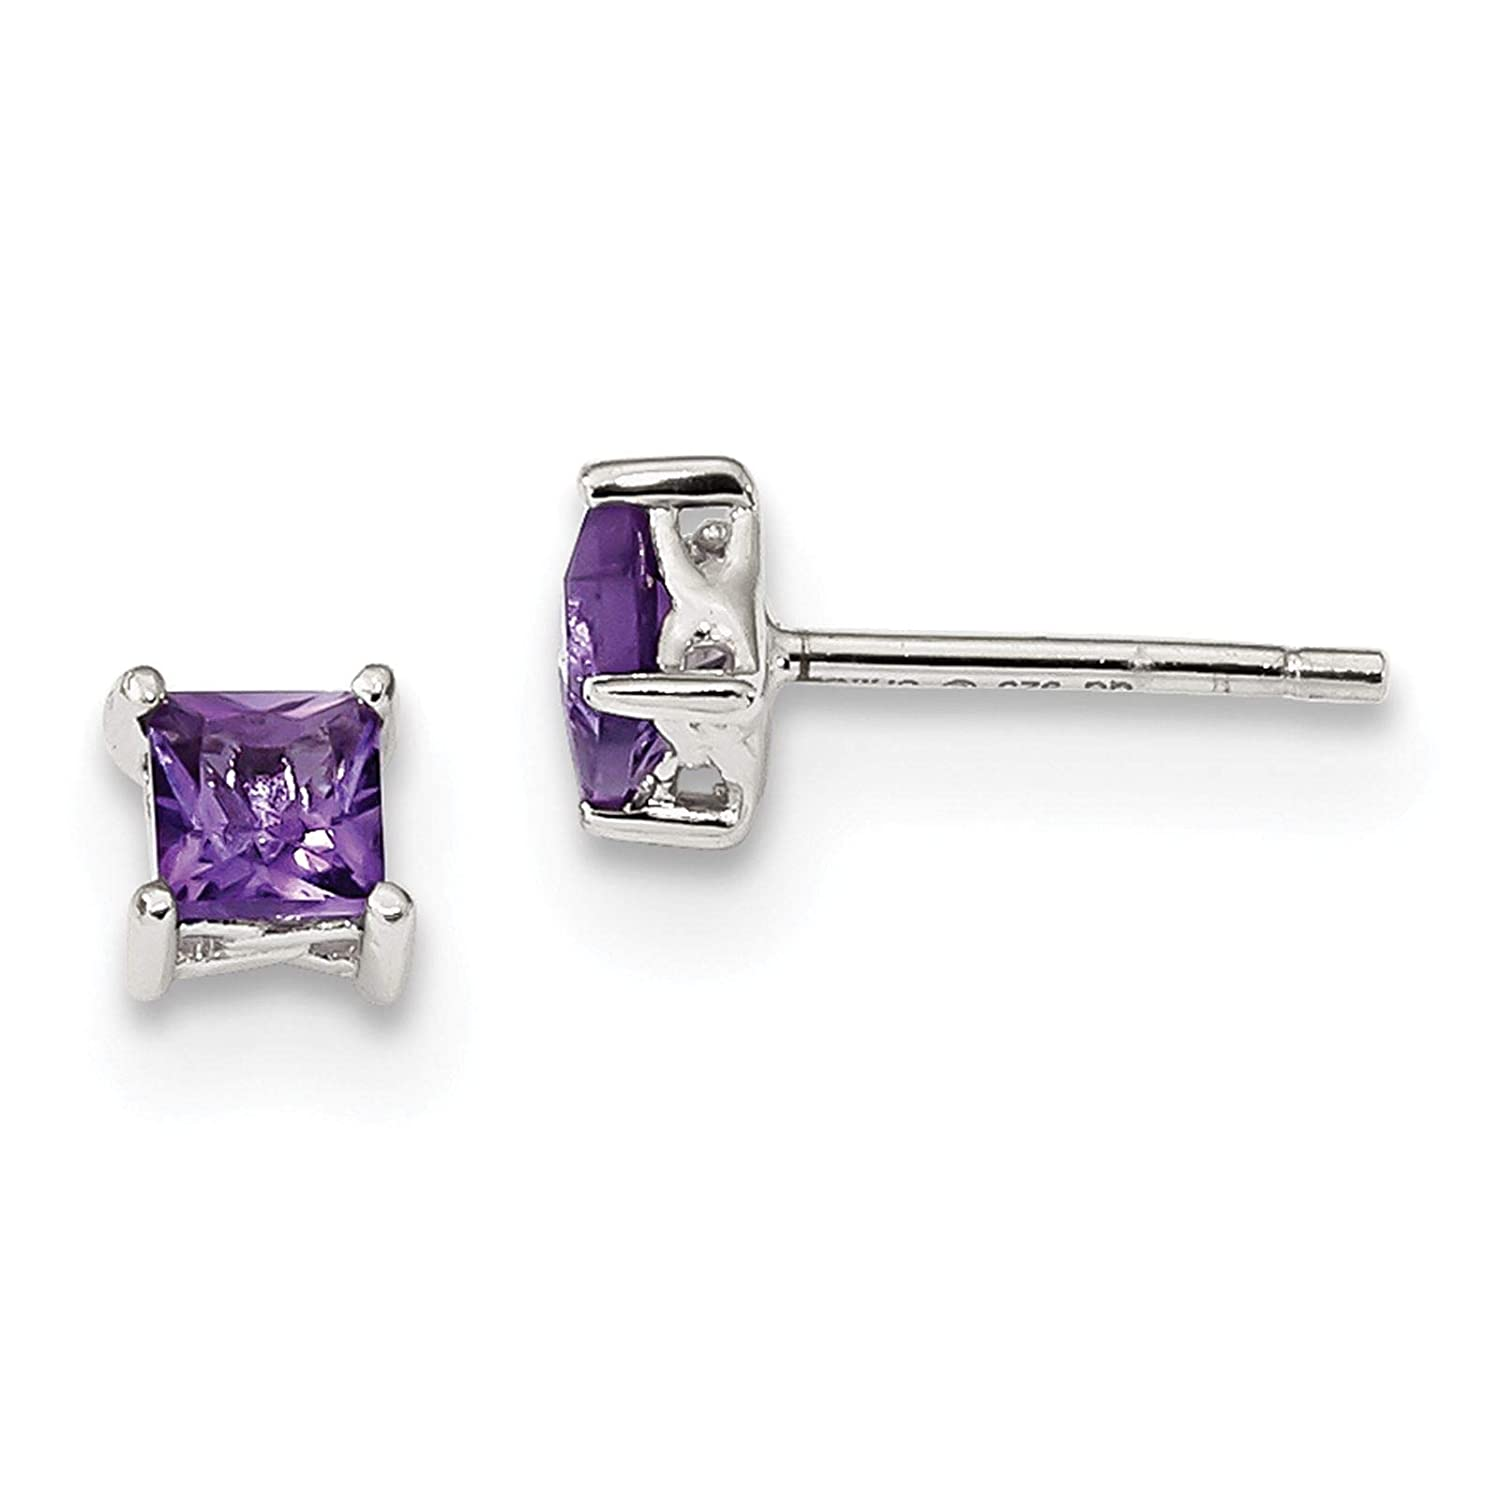 925 Sterling Silver Polished 4mm Square Amethyst February Stone Stud Post Earrings